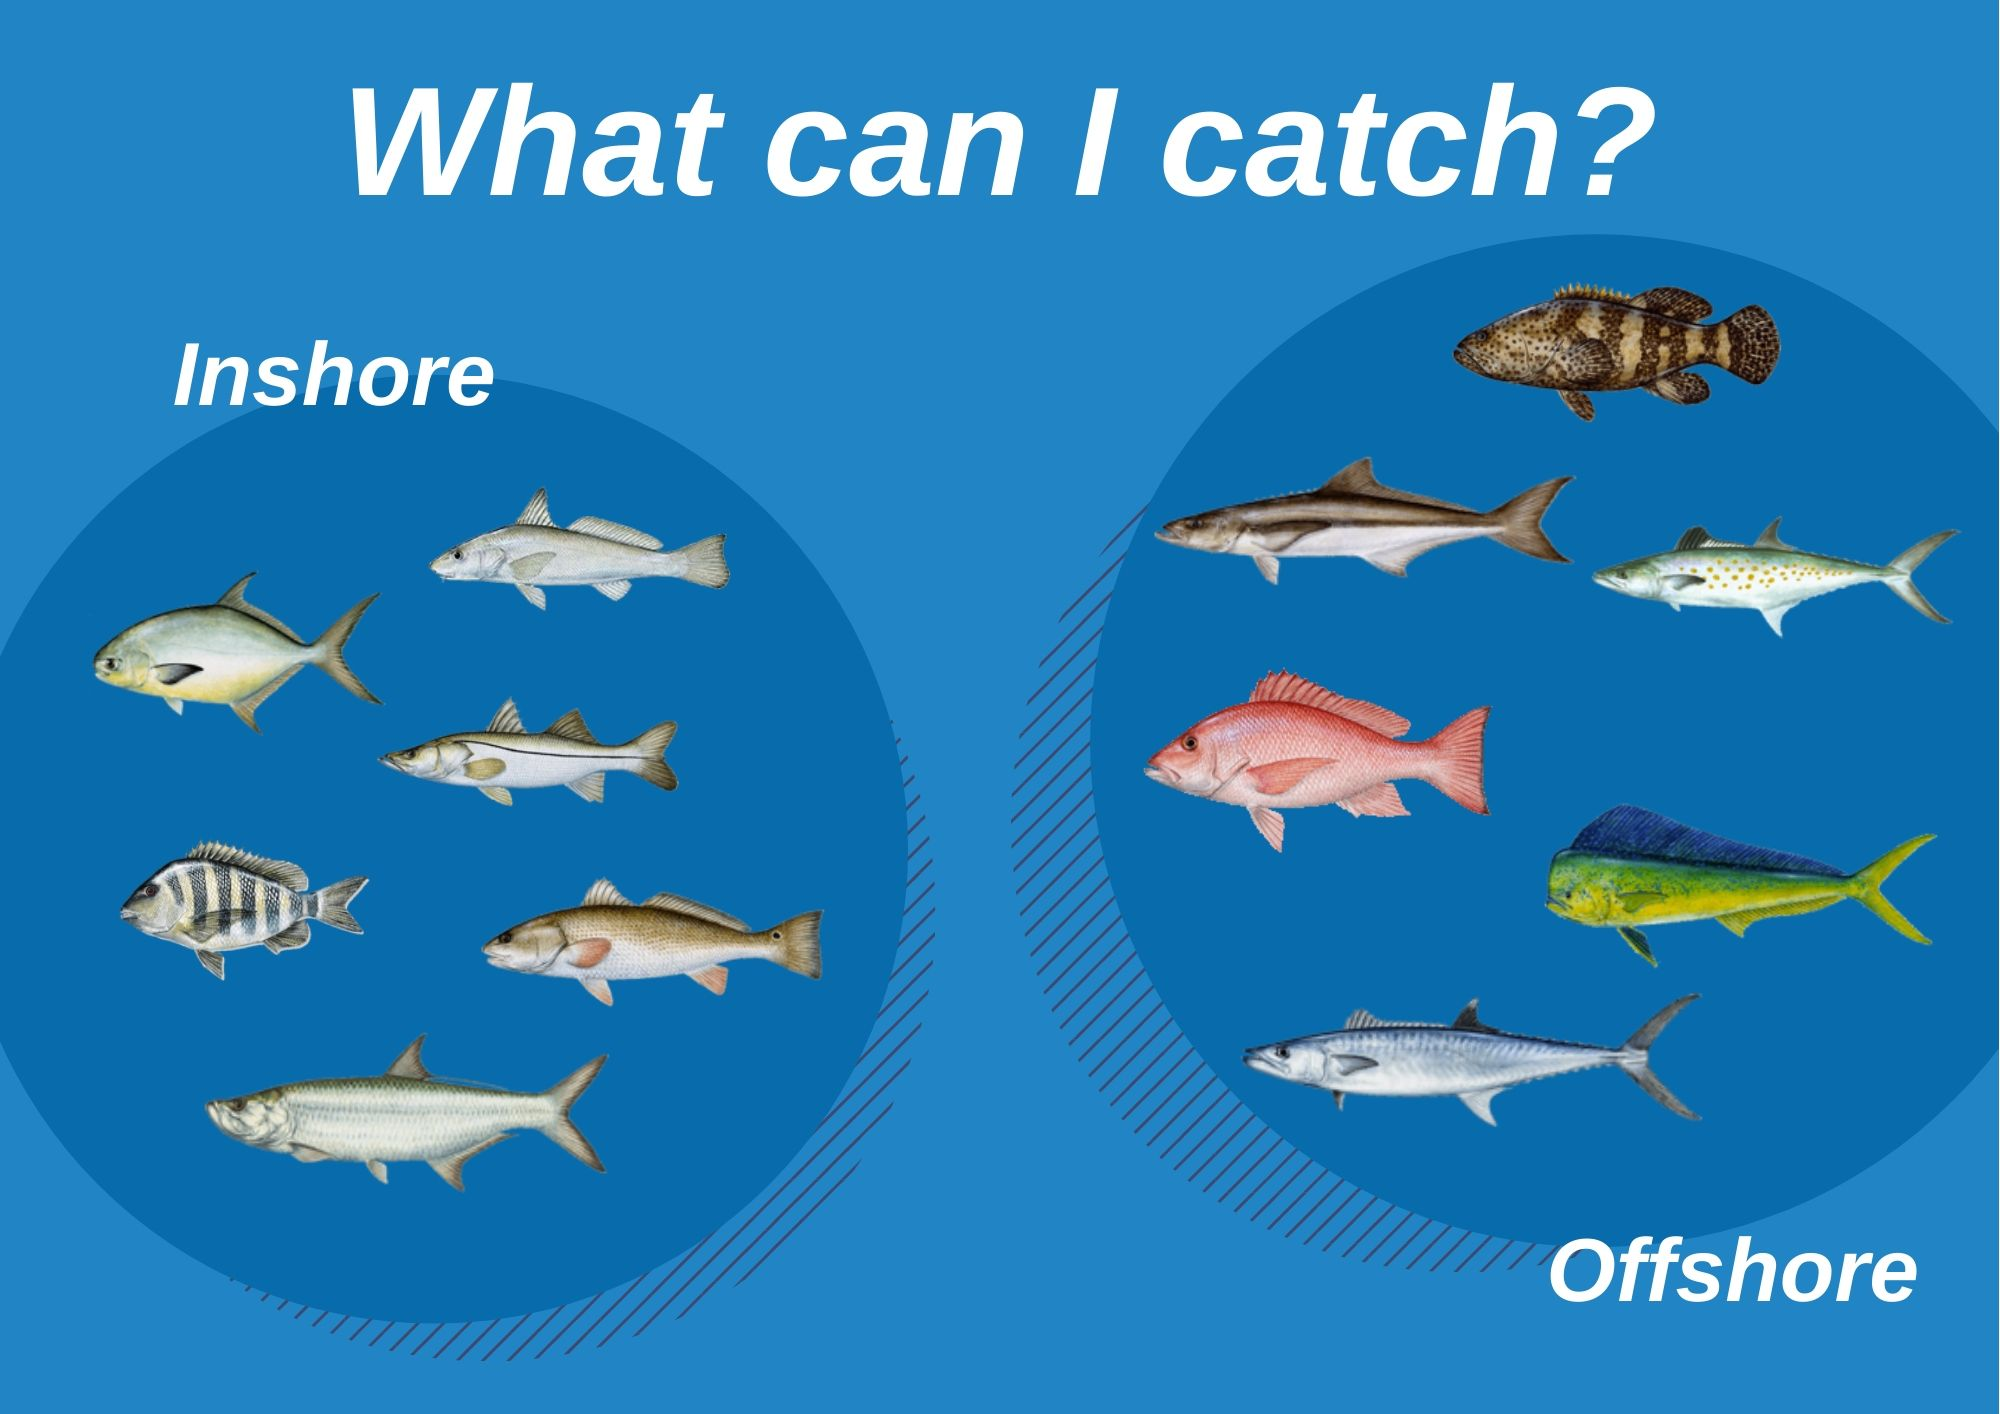 An infographic showing the top fish species to target in Boca Grande, Florida in offshore and inshore waters